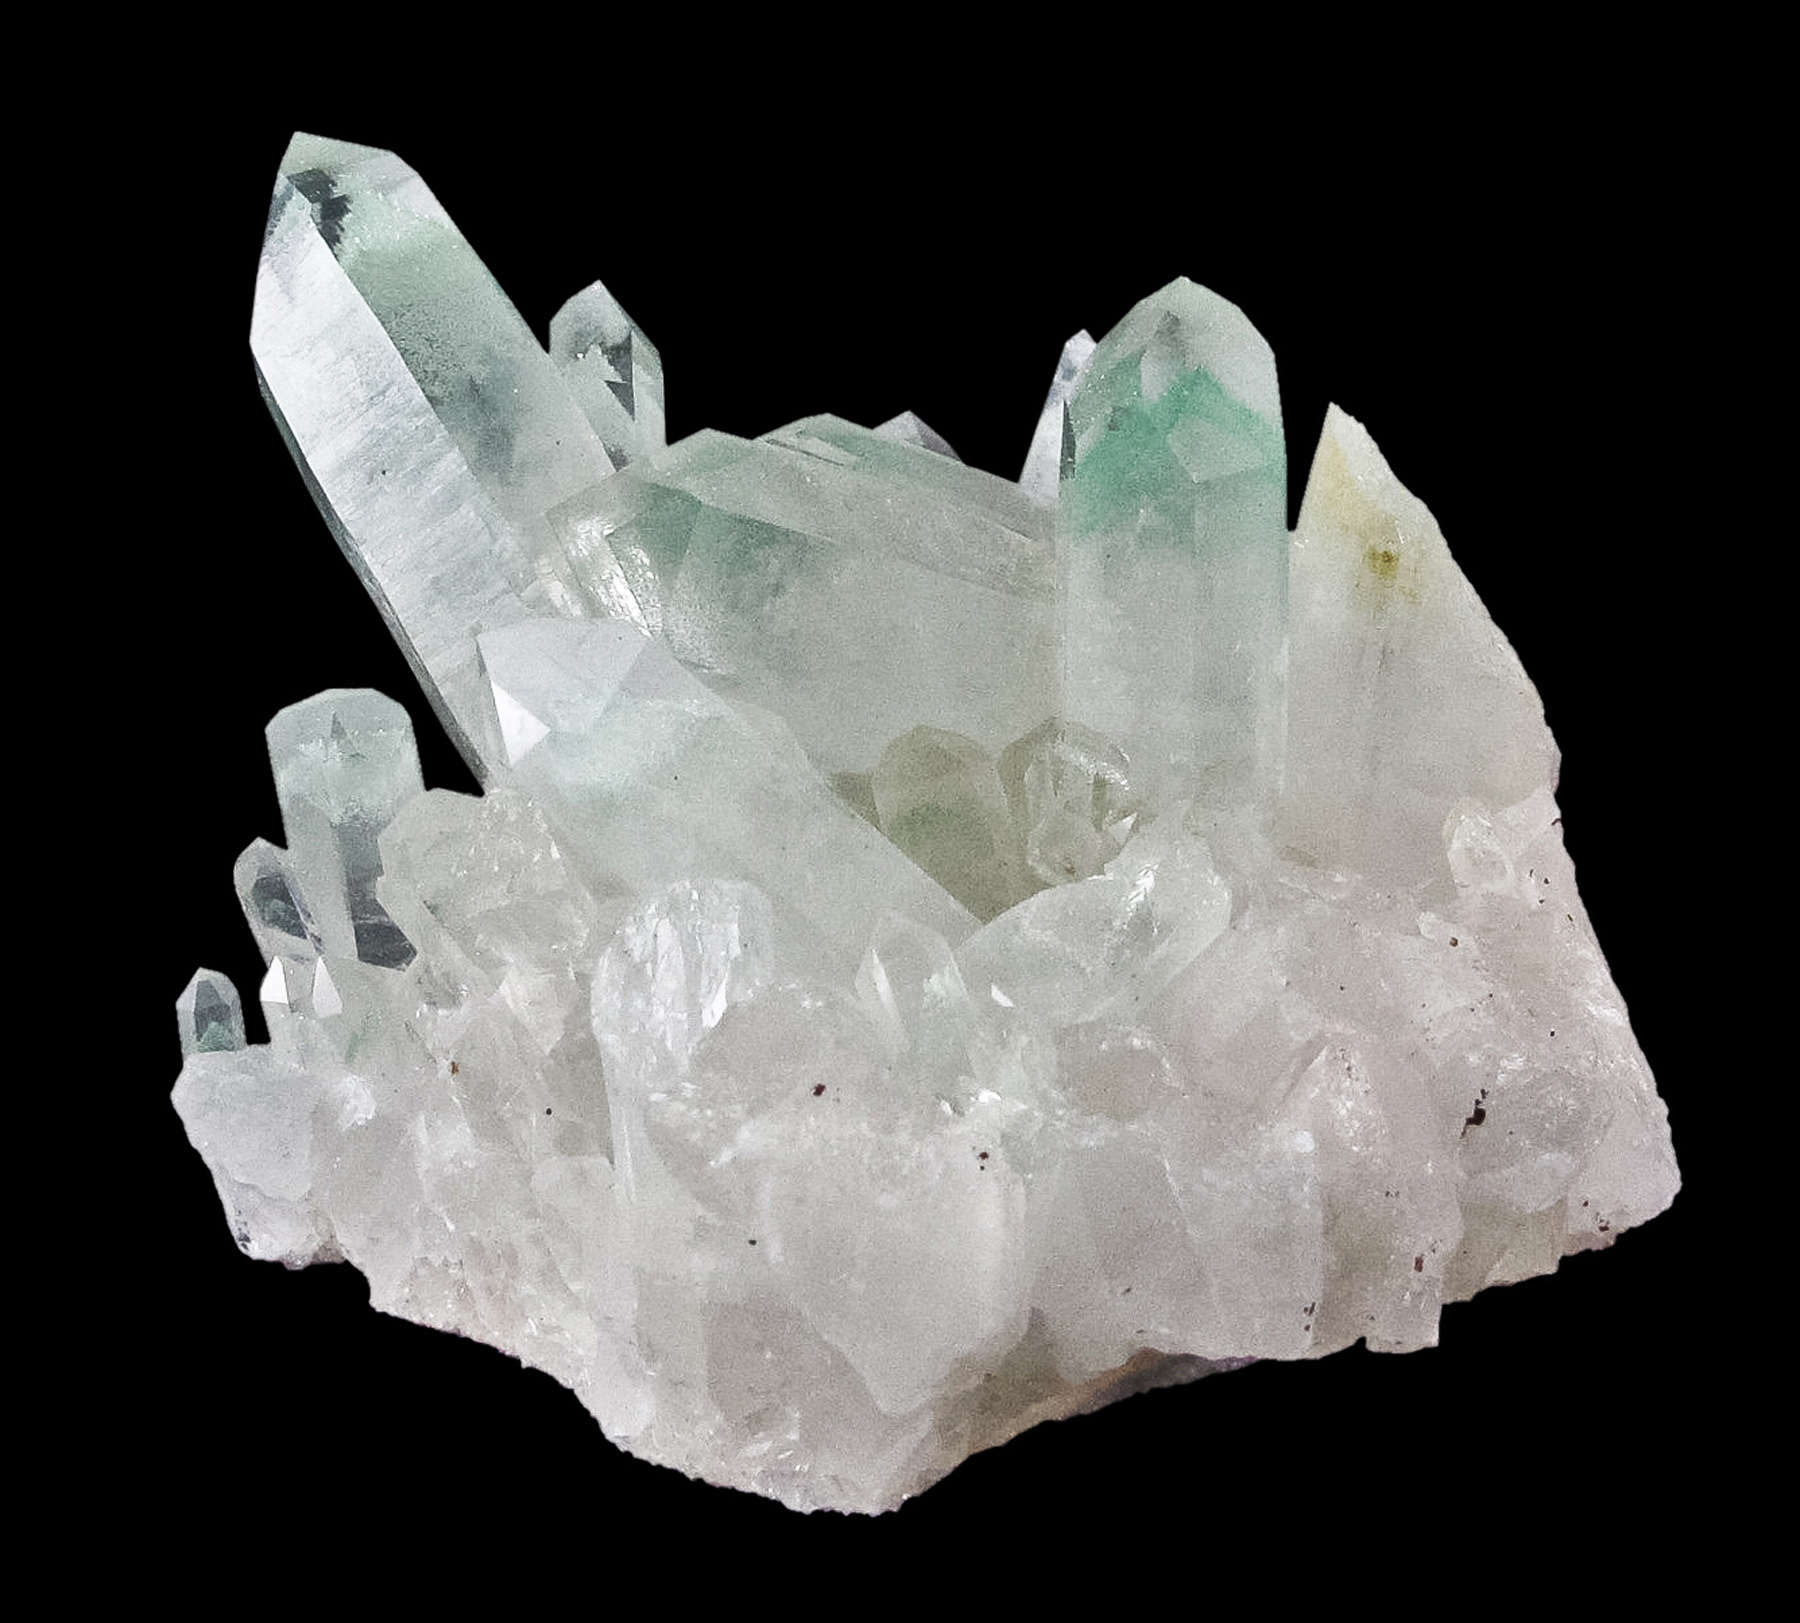 This aesthetic cluster quartz crystals reaching 4 cm length emplaced